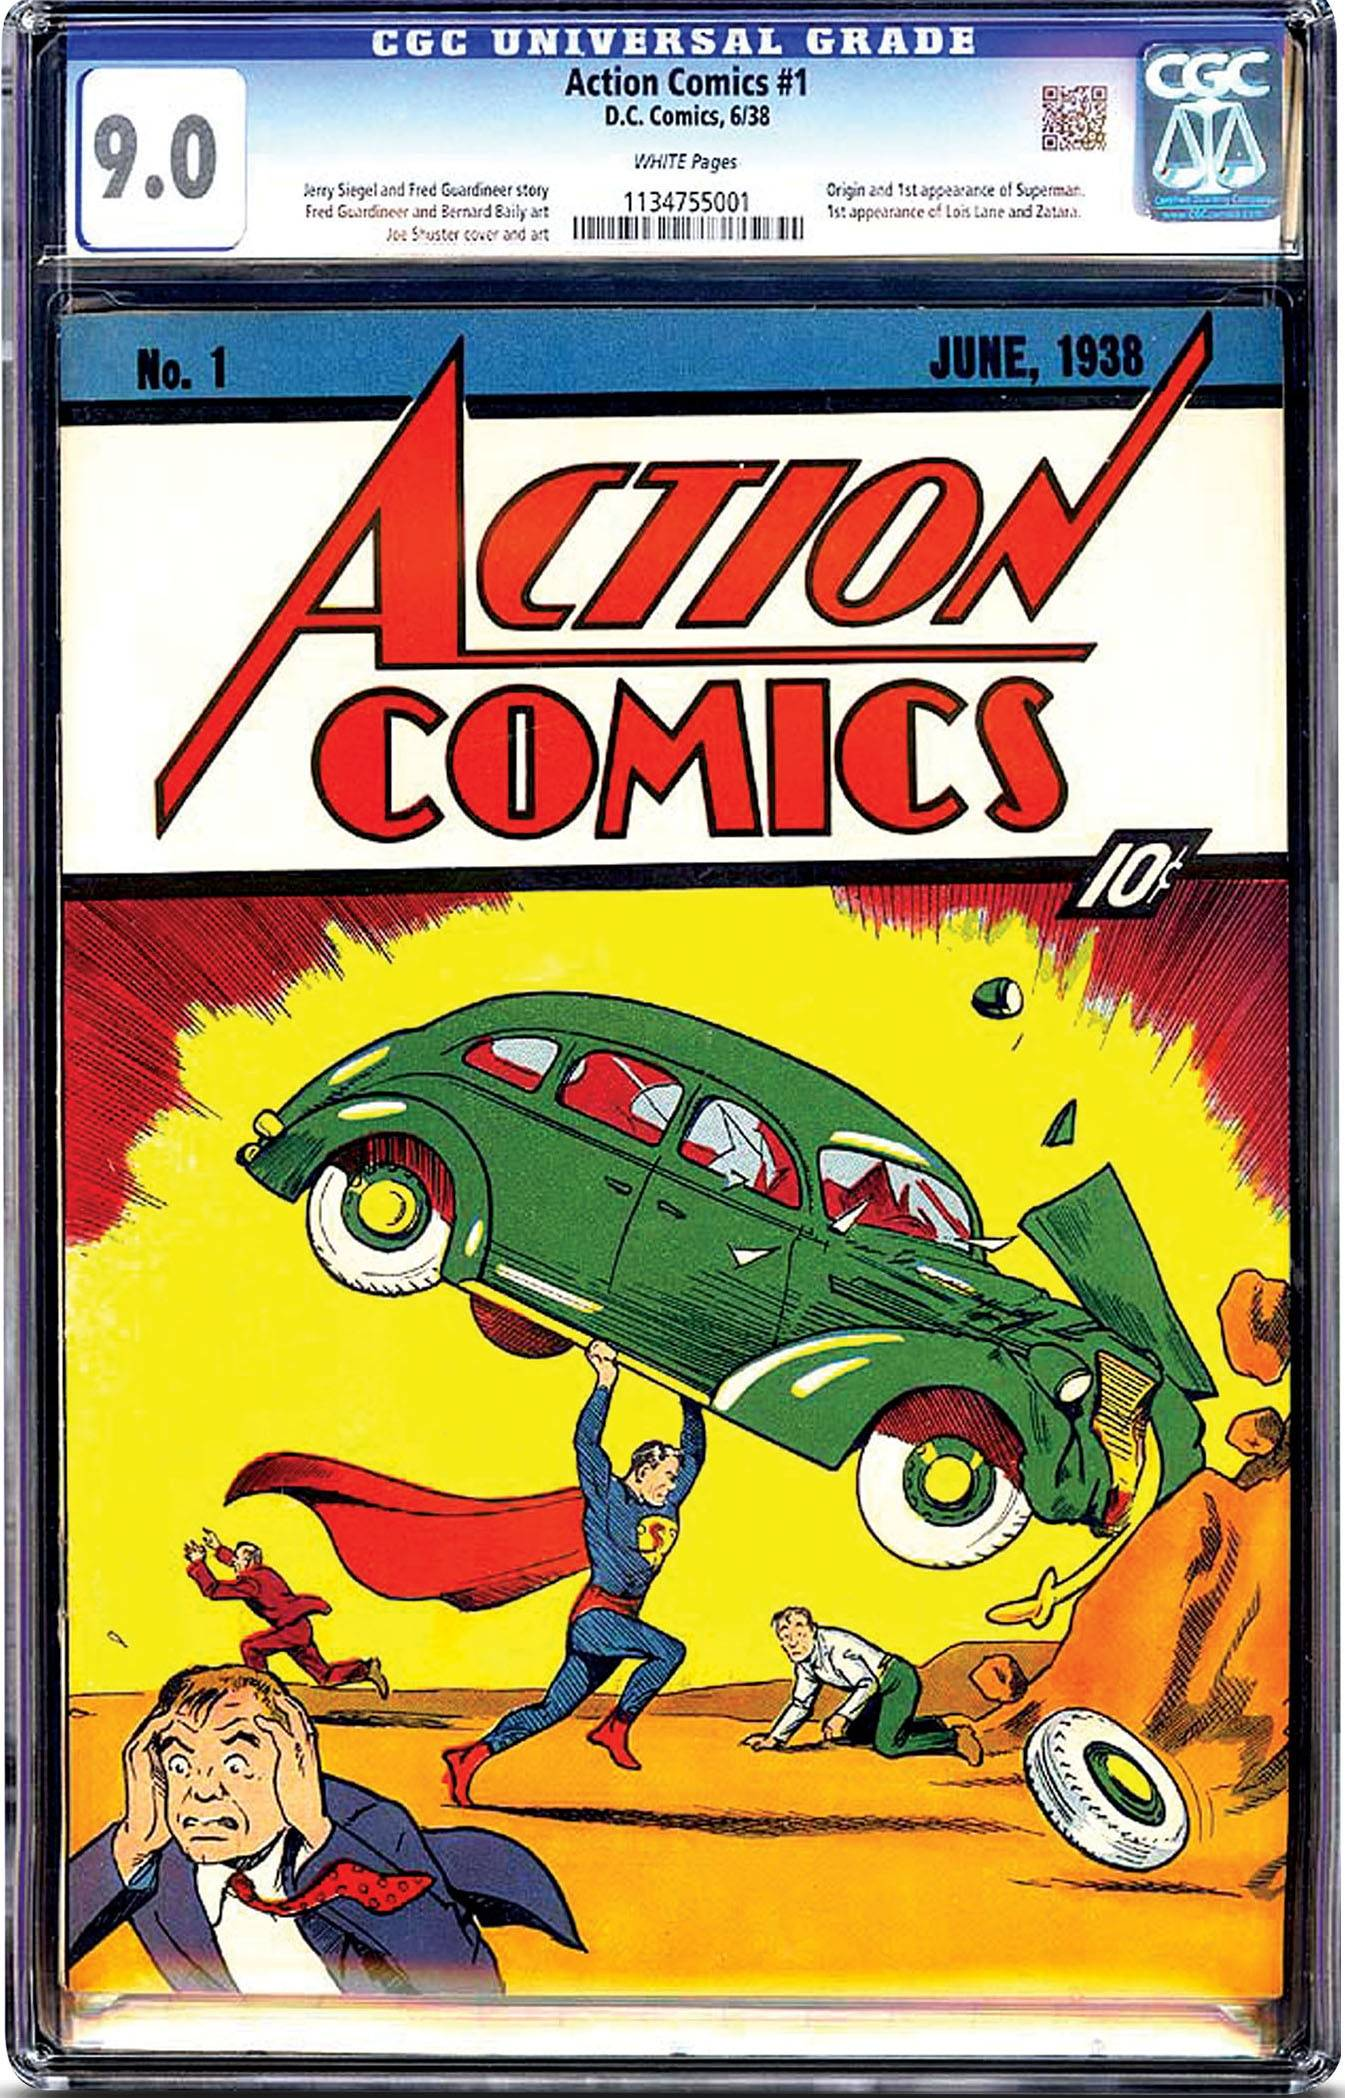 This is a nearly flawless copy of Superman's comic-book debut that sold for $3.2 million. About 100 to 150 copies are believed to exist, but only a handful of them in top condition. The book just sold received a seldom-seen 9.0 on a 10-point scale used to measure vintage comic books' condition.